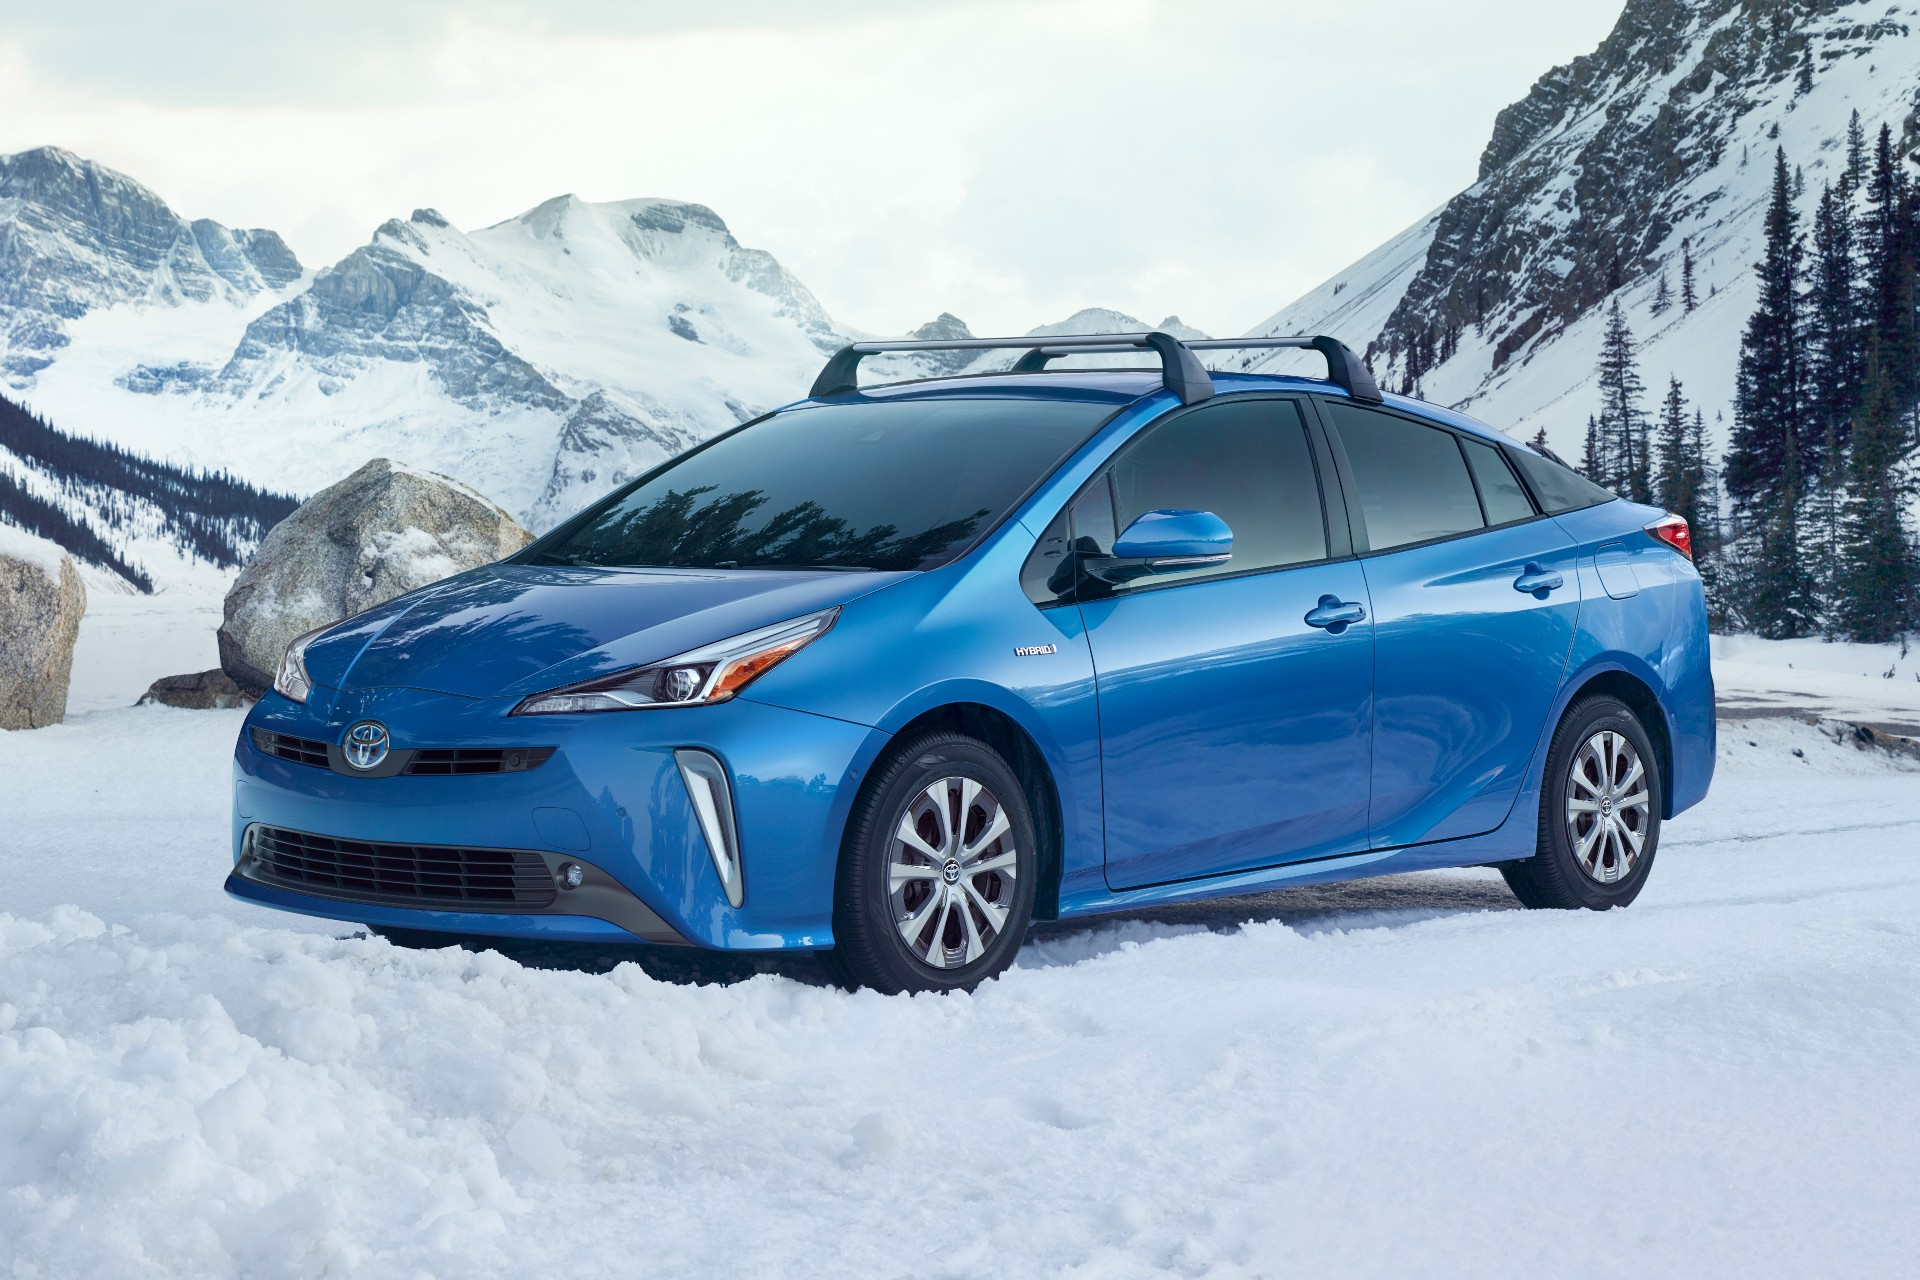 Toyota Prius AWD-e: Going light on the rear motor helps it hit 50 mpg